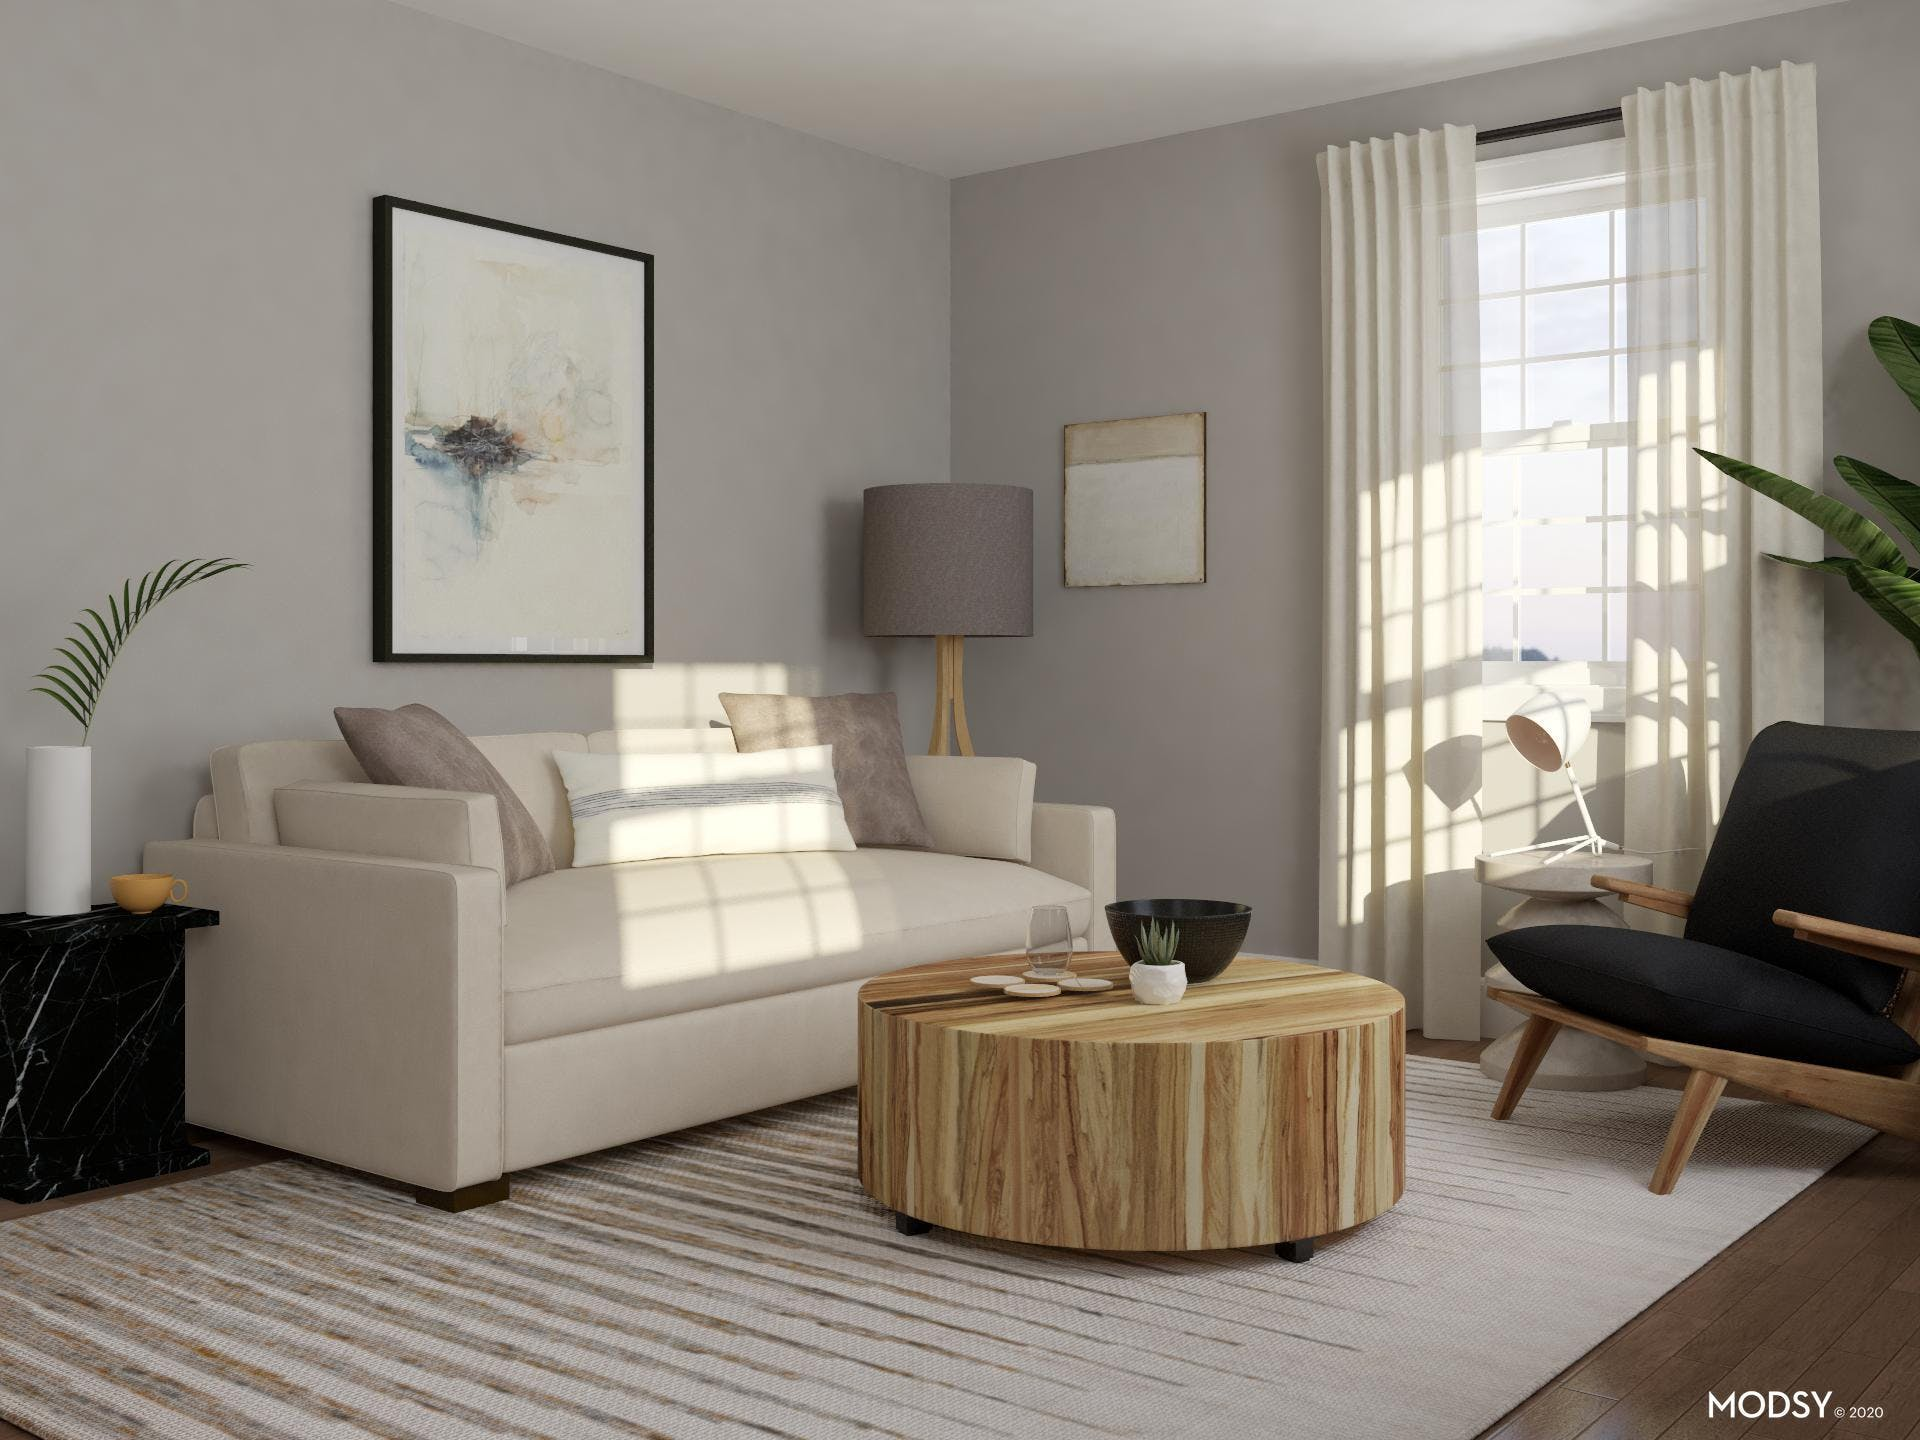 Cool, Calm, and Neutral Living Room